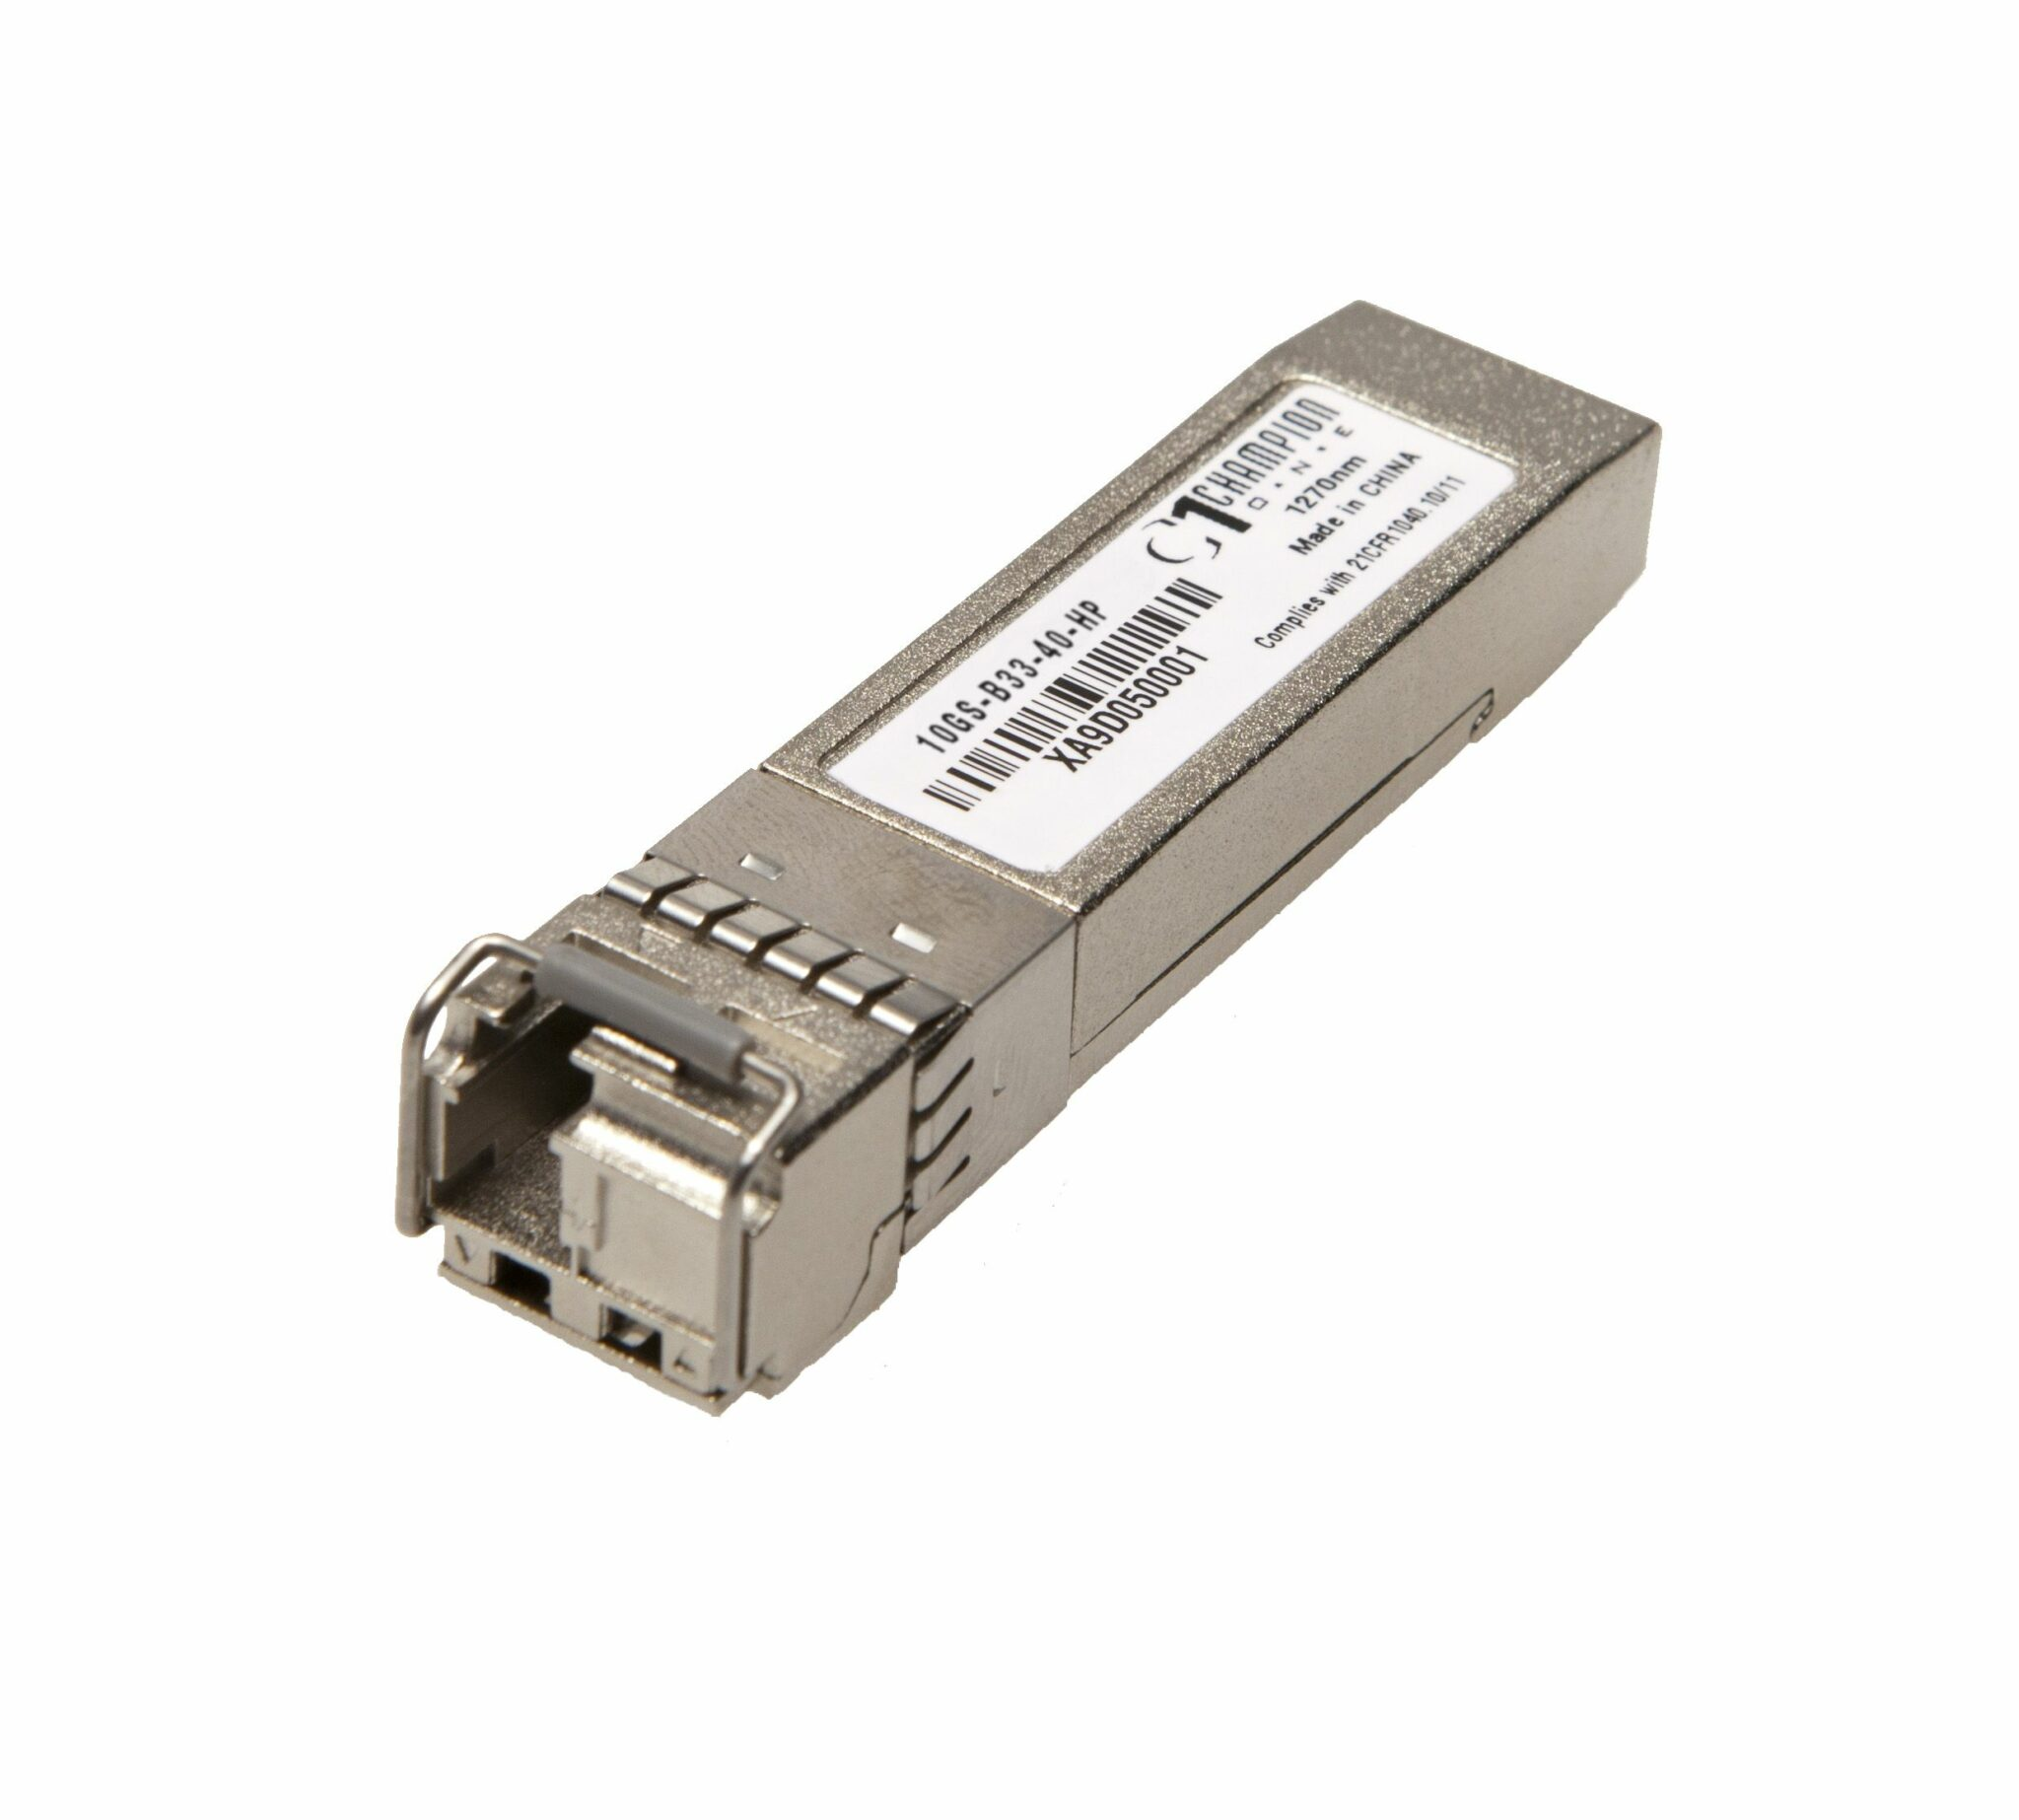 SFP+ SF 10GBase-ER 1330nm 40km Transceiver, HP Systems compatible